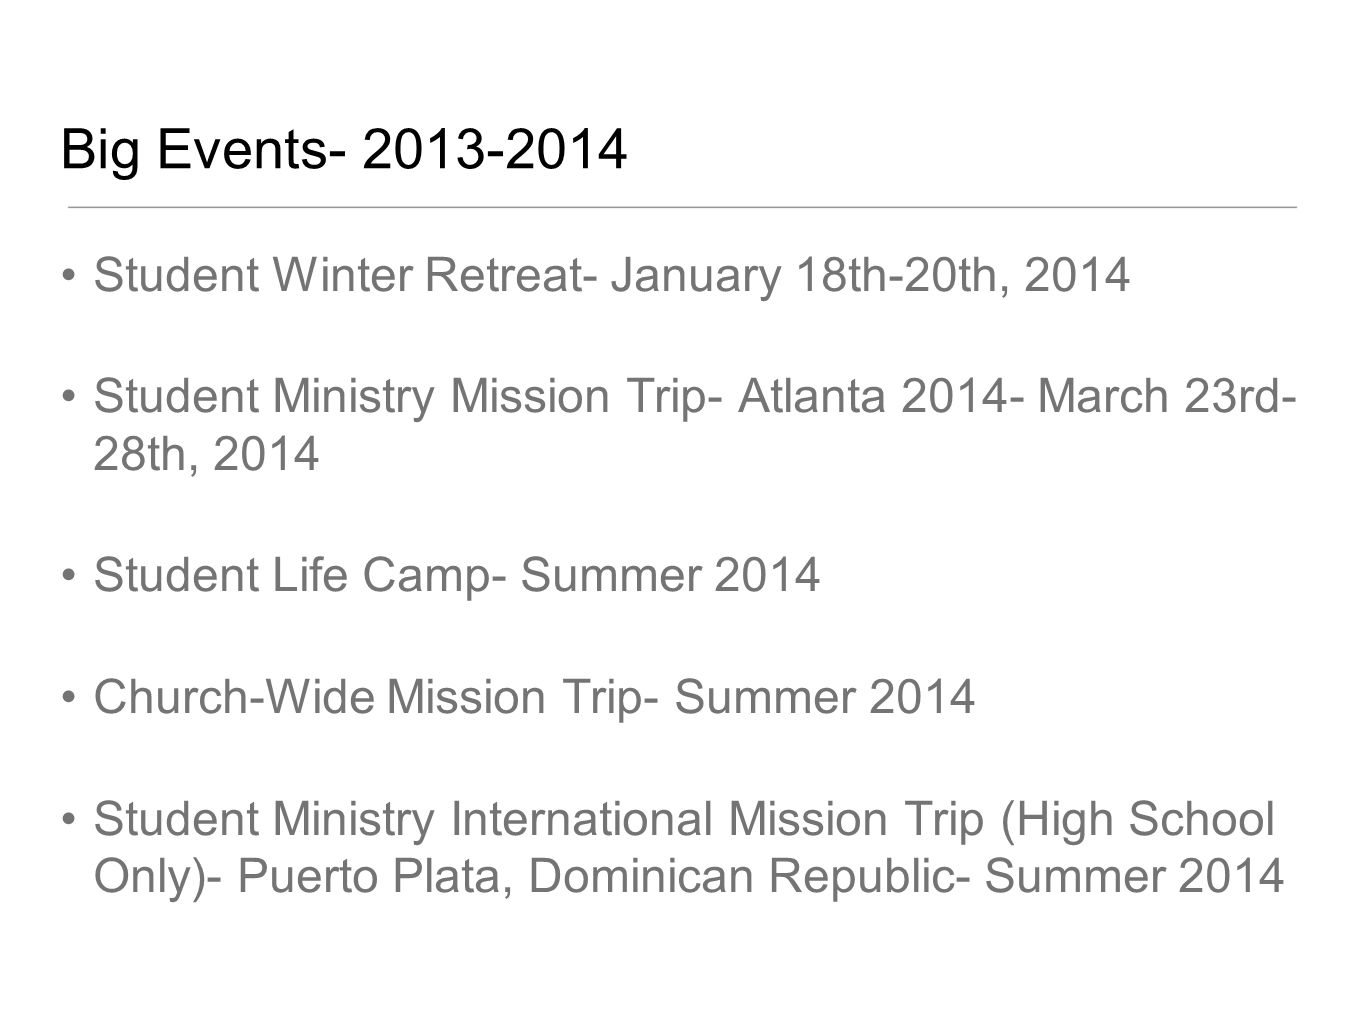 Big Events Student Winter Retreat- January 18th-20th, 2014 Student Ministry Mission Trip- Atlanta March 23rd- 28th, 2014 Student Life Camp- Summer 2014 Church-Wide Mission Trip- Summer 2014 Student Ministry International Mission Trip (High School Only)- Puerto Plata, Dominican Republic- Summer 2014